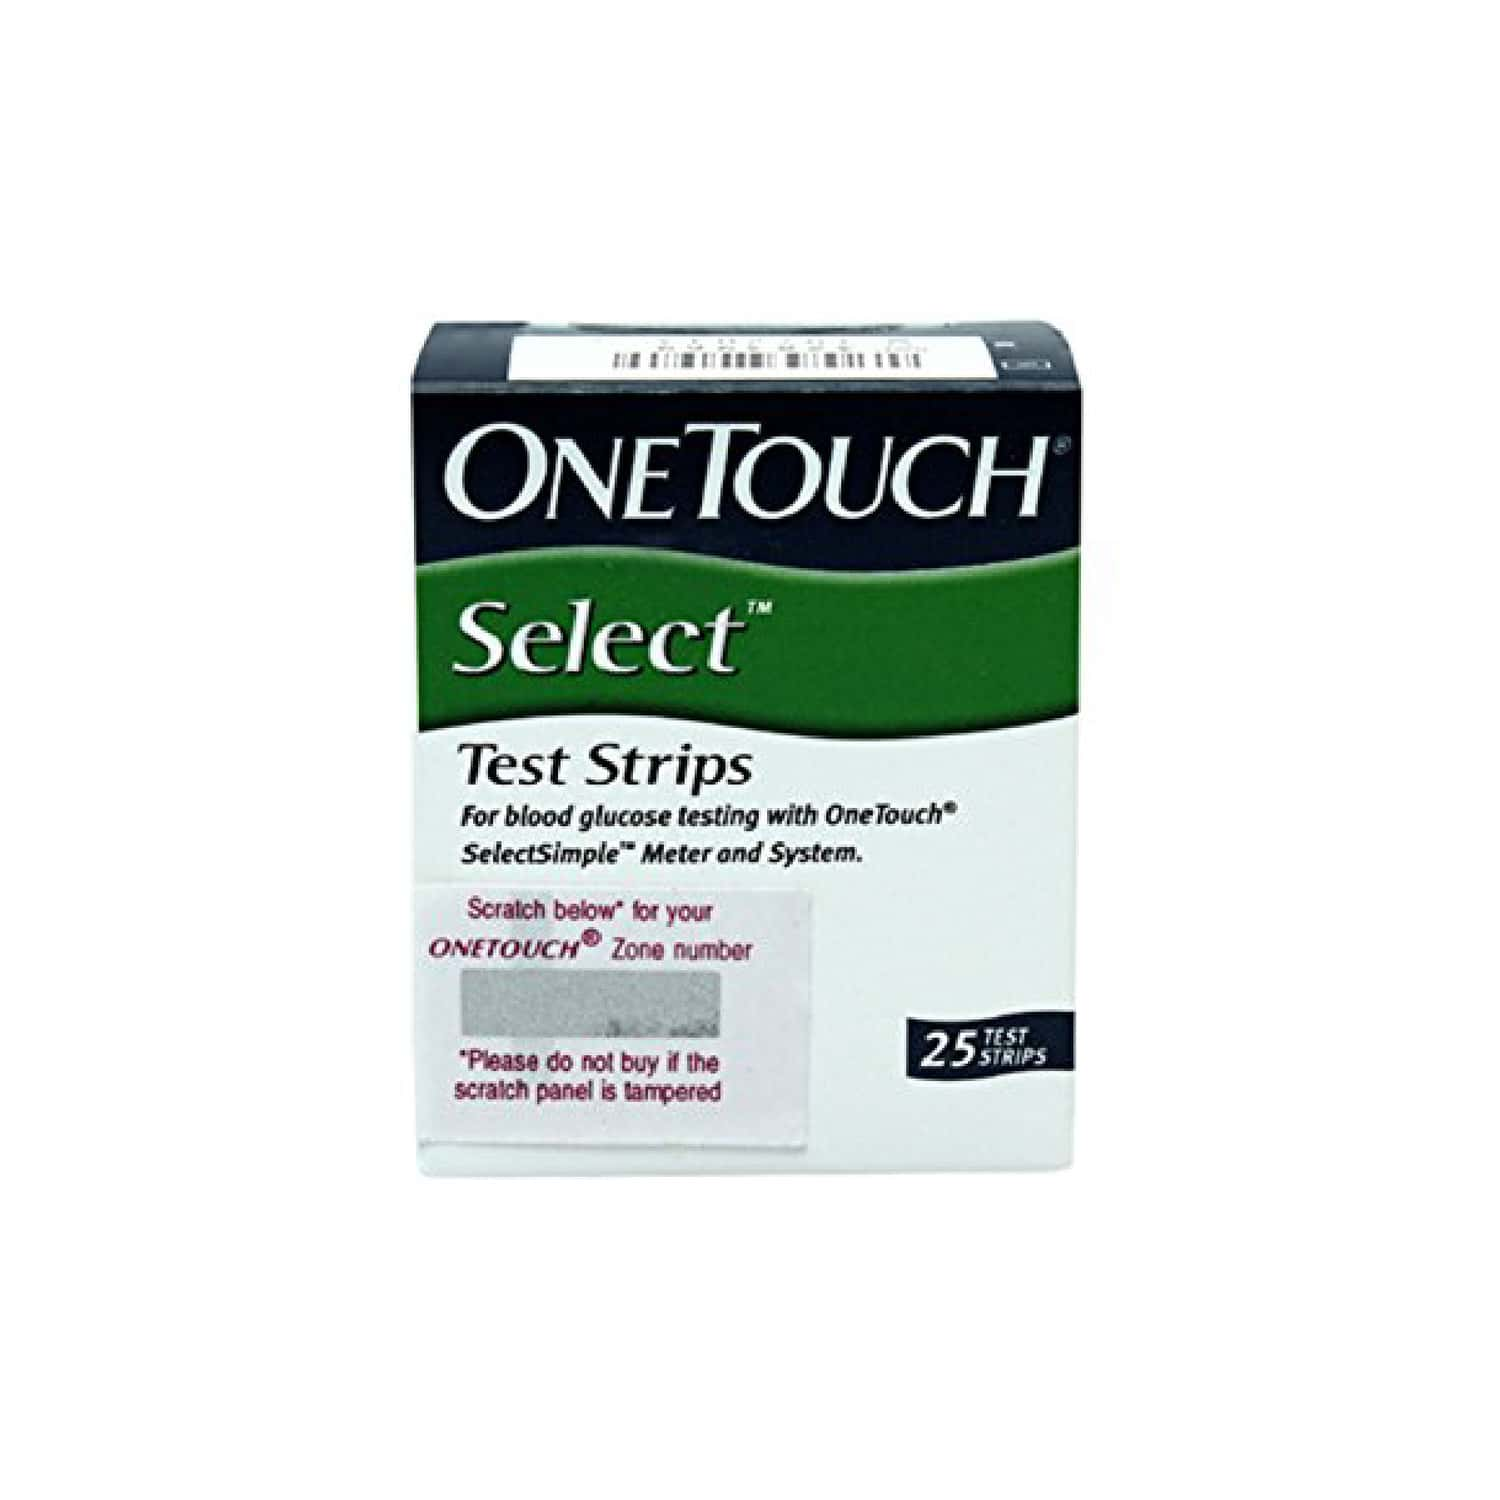 One Touch Select Glucometer Test Strips Bottle Of 25